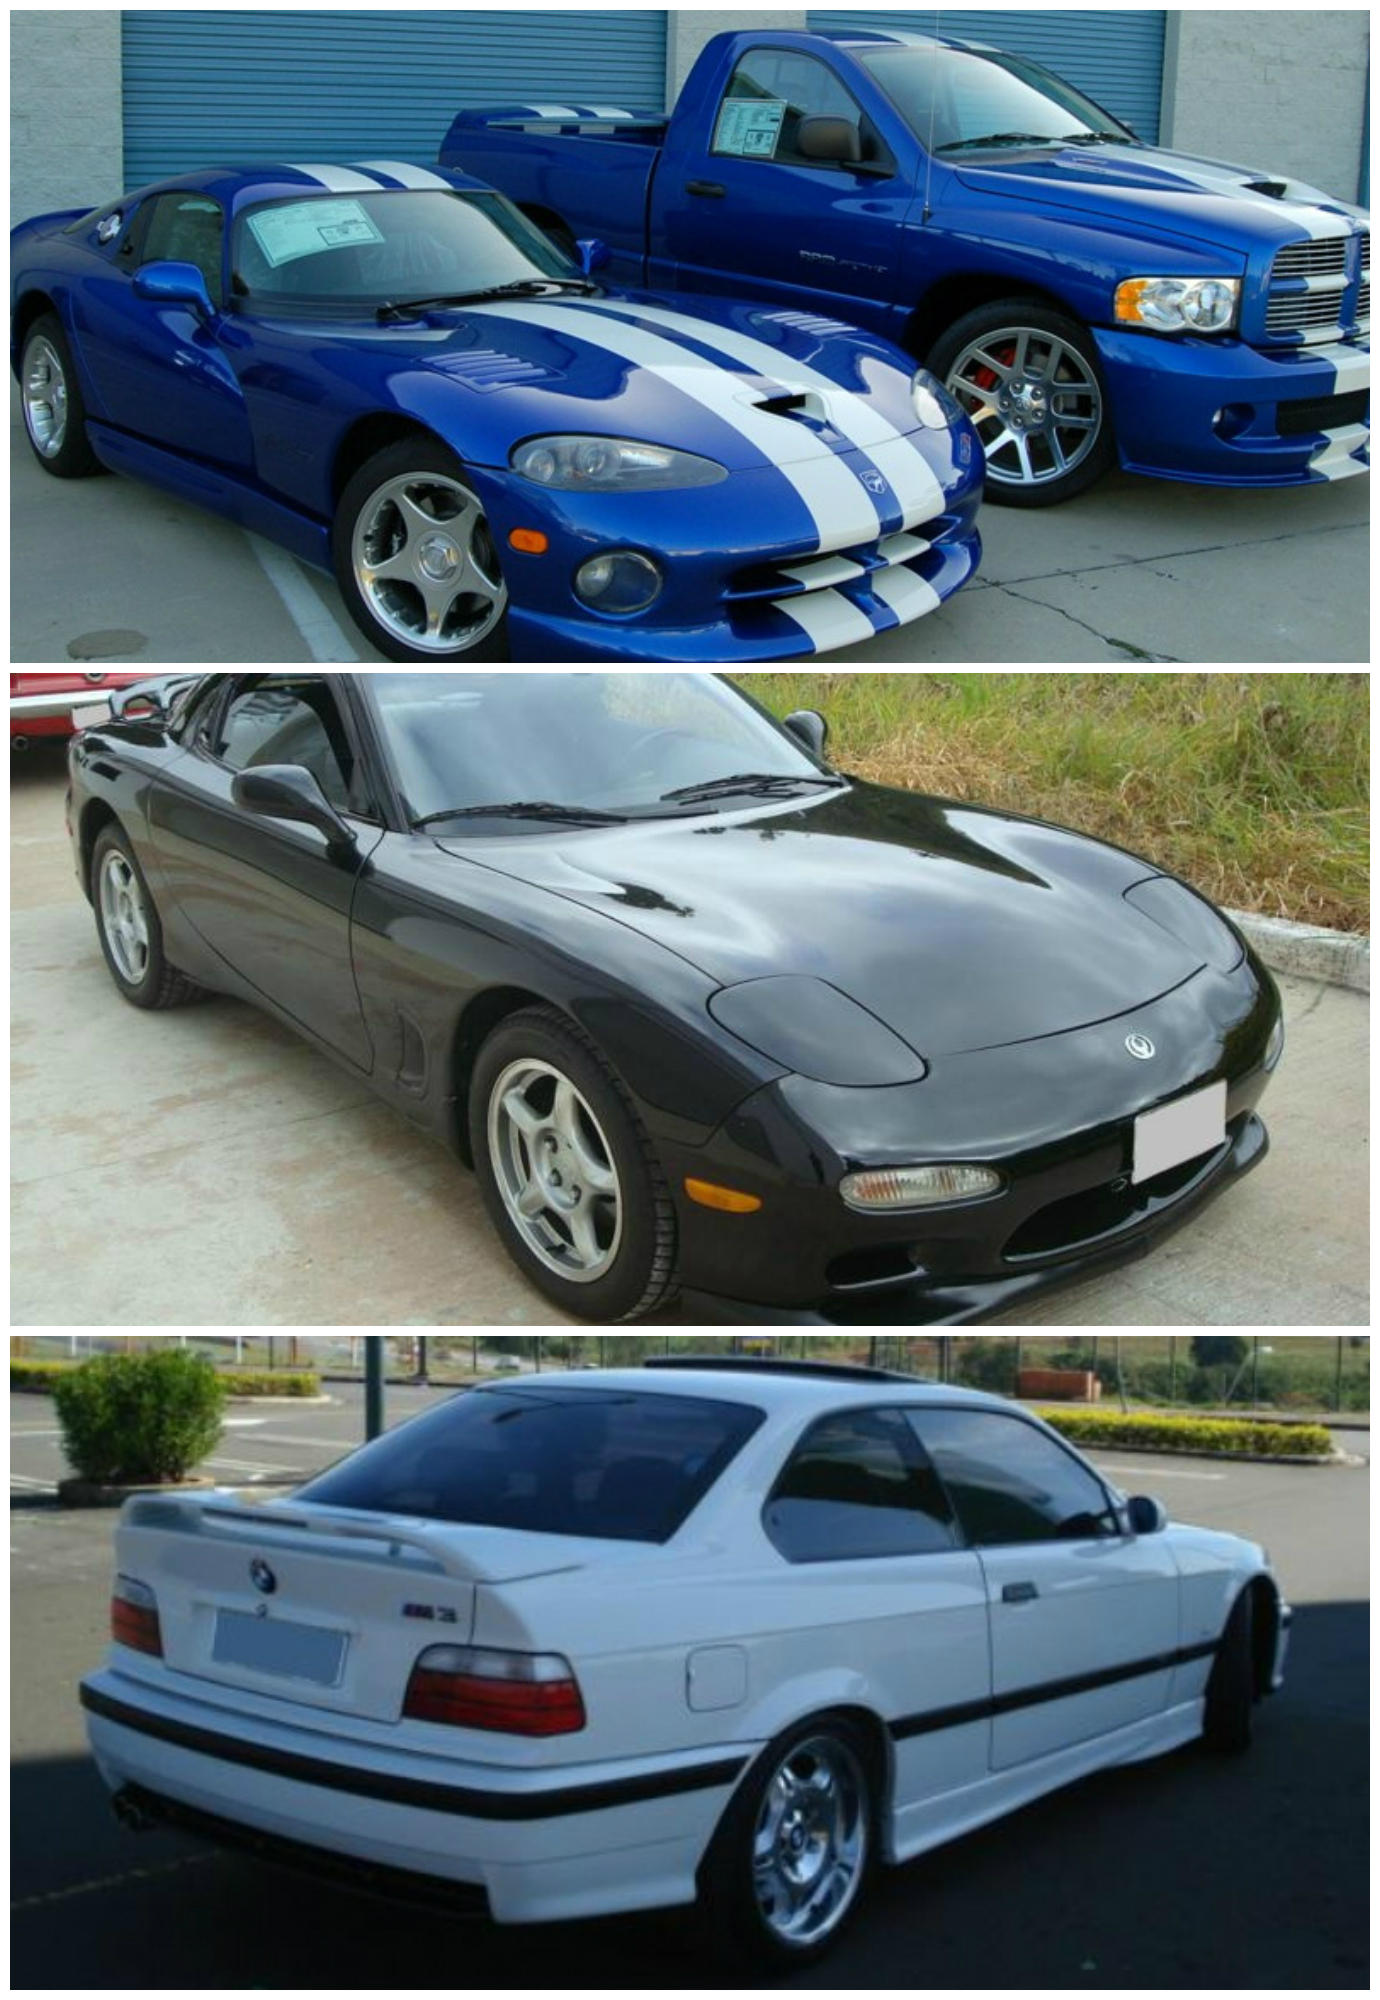 Brazil Has Tons Of Mint Condition 90s Cars For Sale